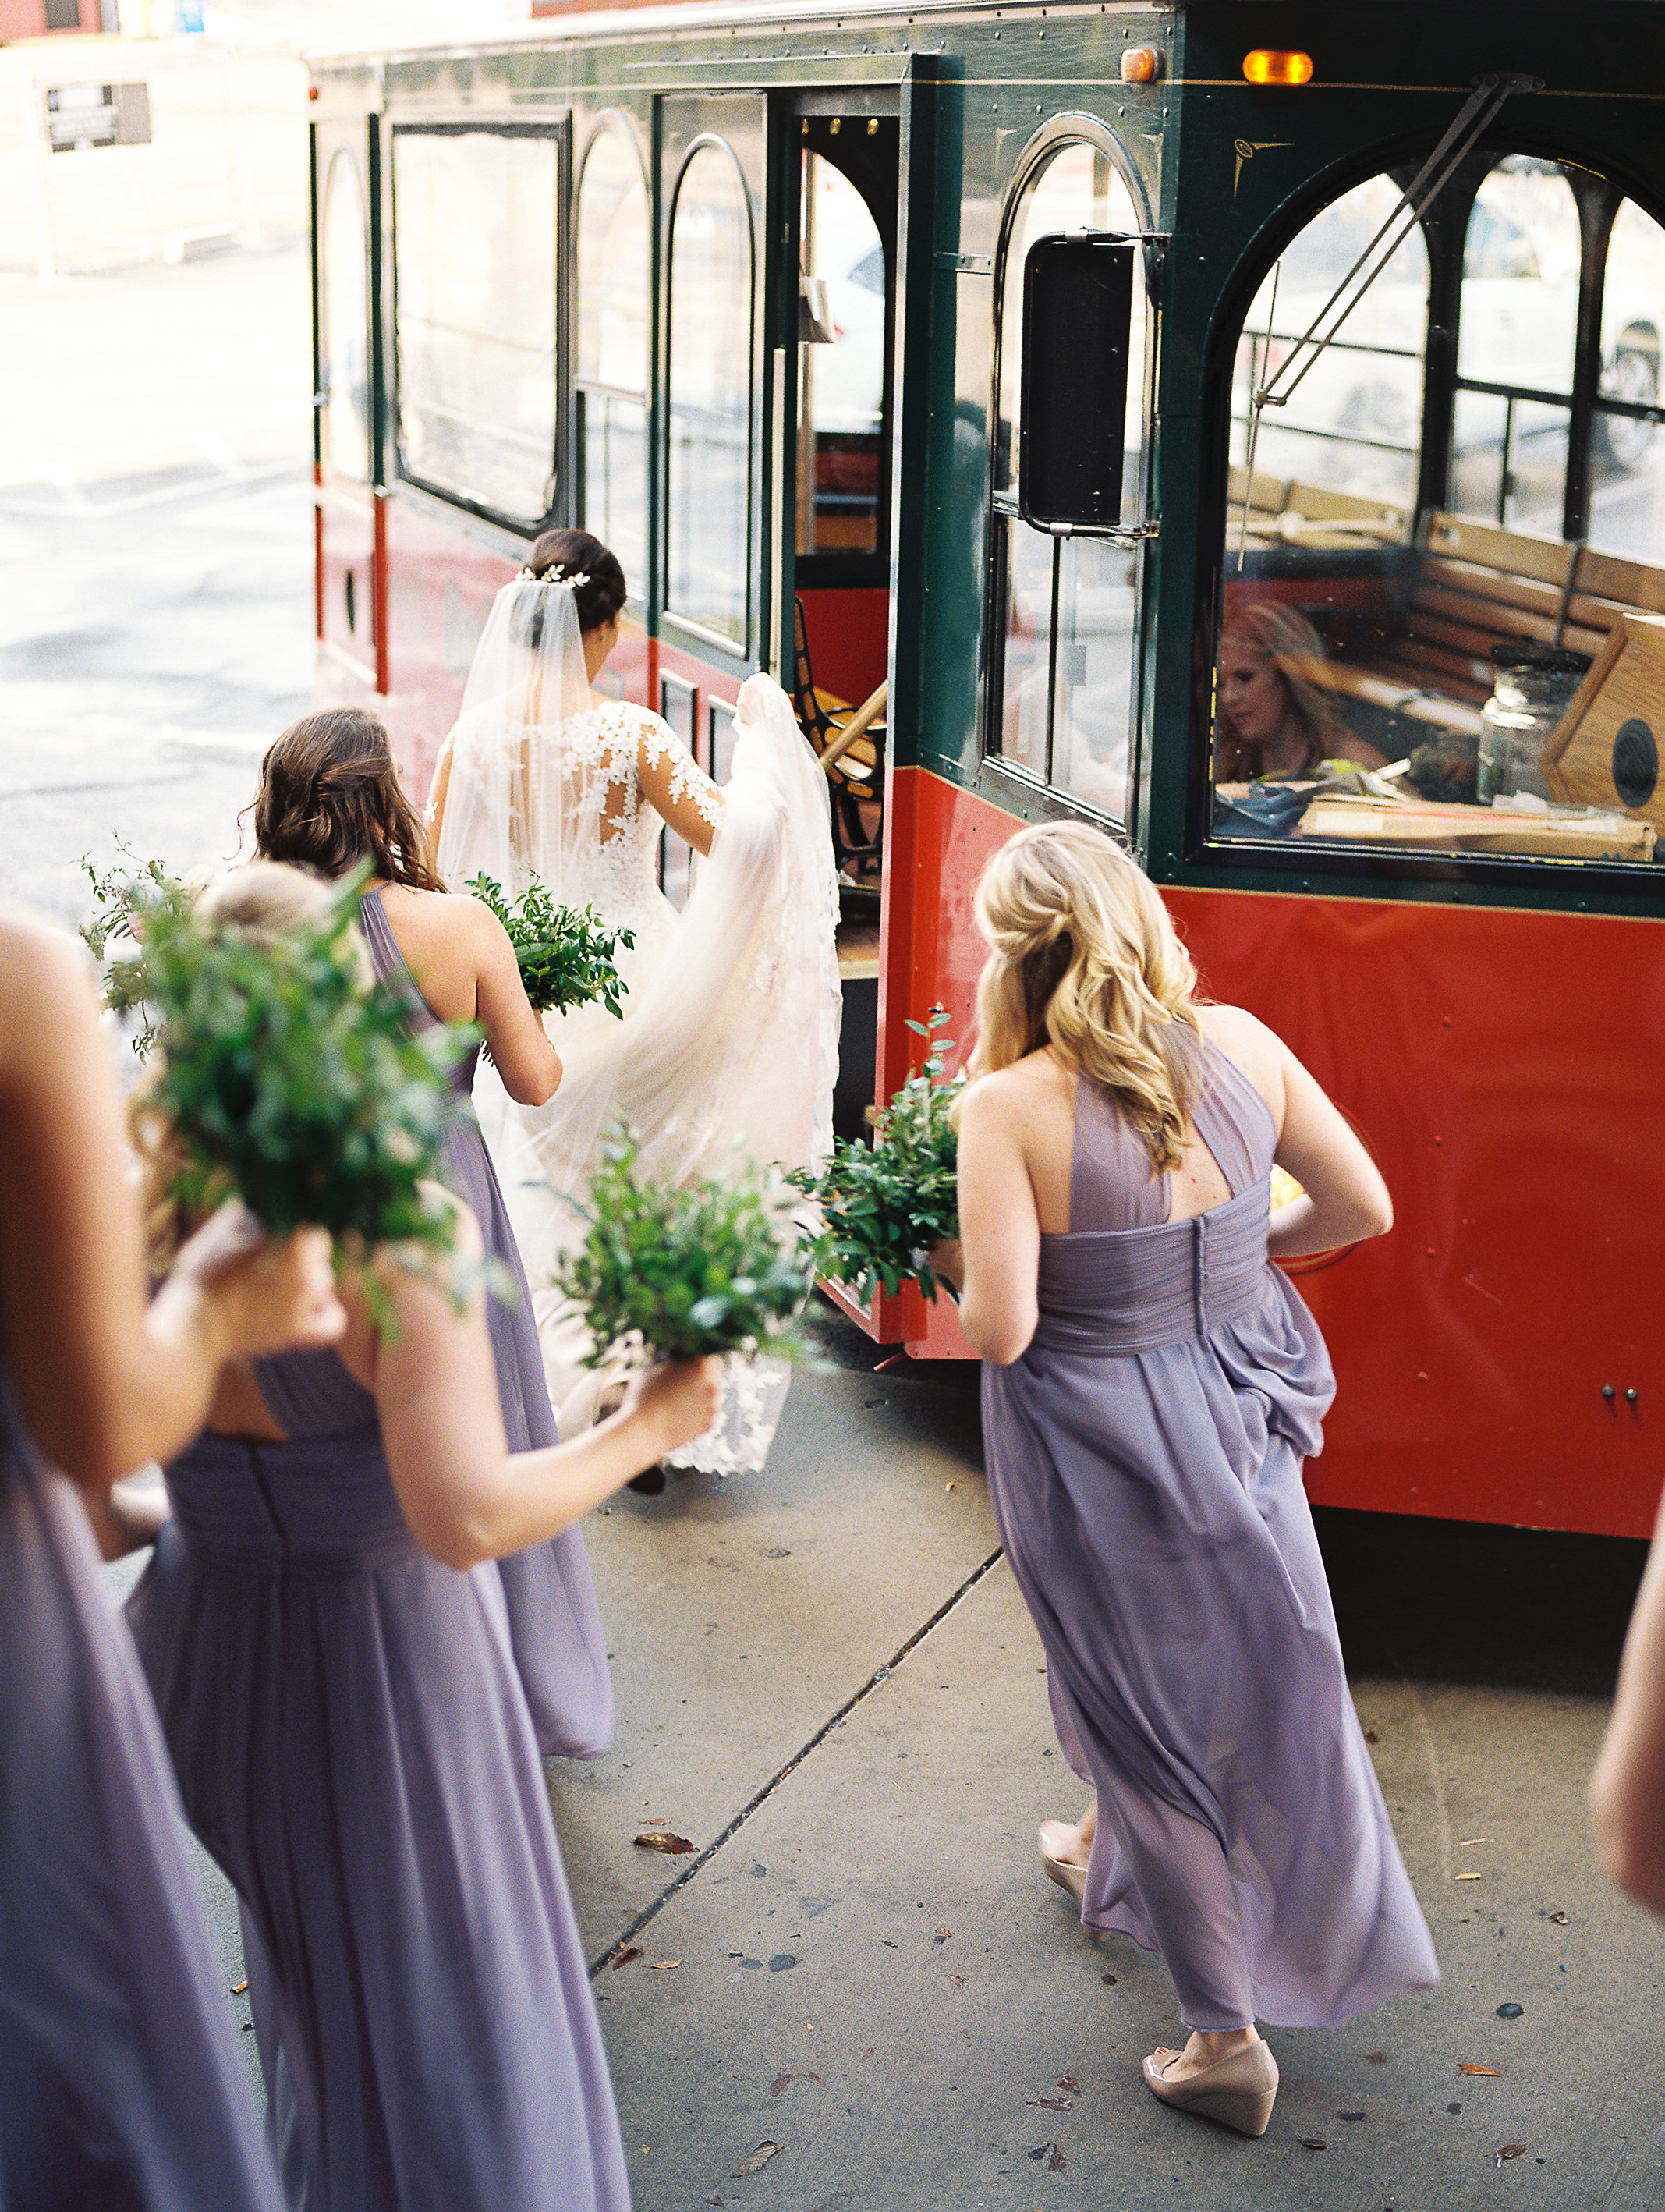 ratcliff_wedding-1139 Emily & Marcus: A Cozy Nashville Wedding Blog Invision Events Weddings    invision_events, birmingham_al, auburn_al, alabama, atlanta_ga, atl, georgia, wedding_planner, wedding_designer, weddings, photography, wedding_planning